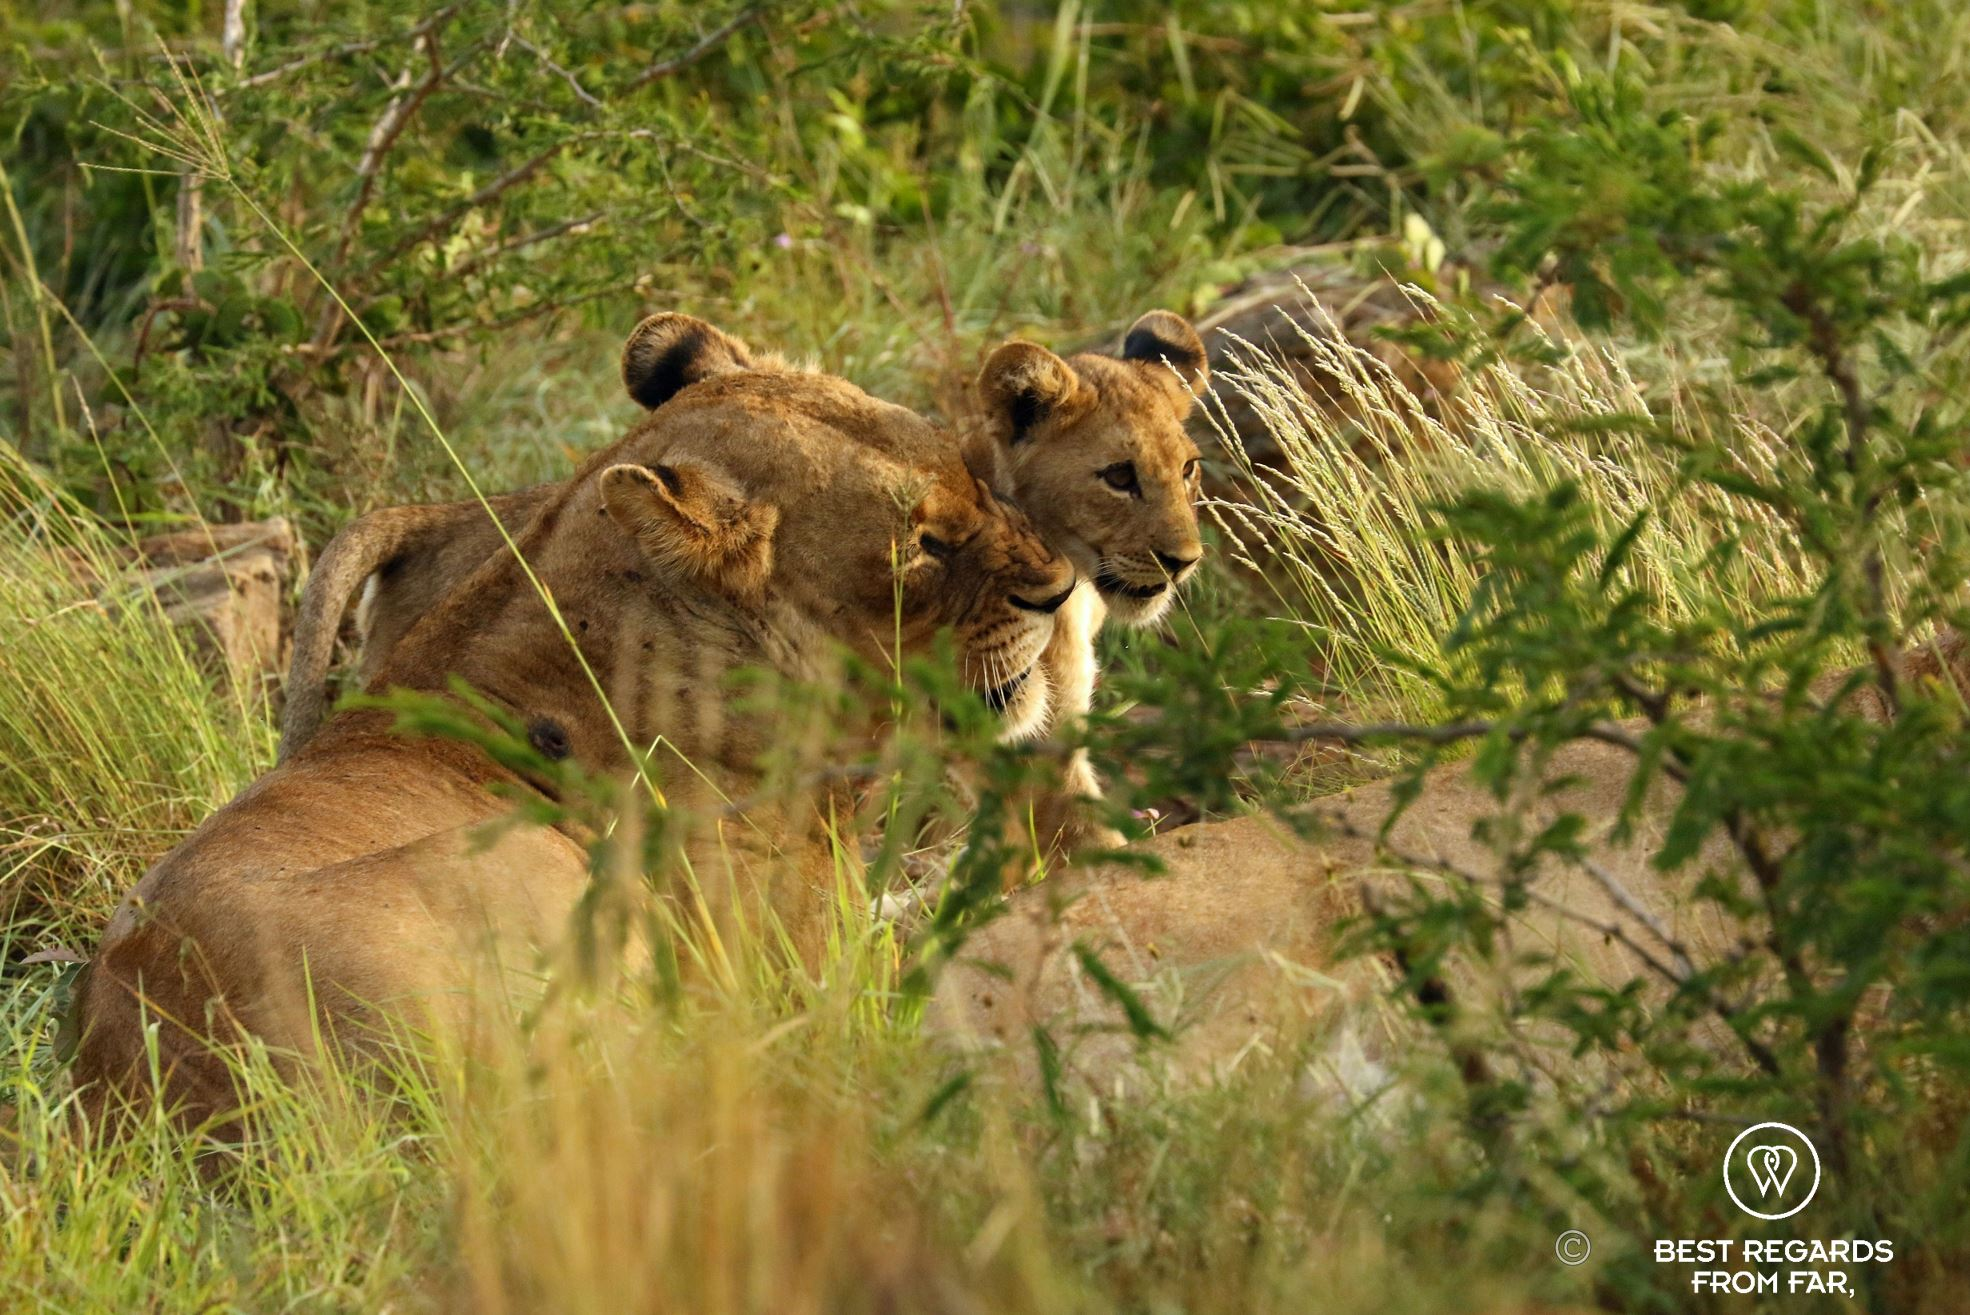 A lioness and her cub, &Beyond Phinda Private Game Reserve, South Africa.